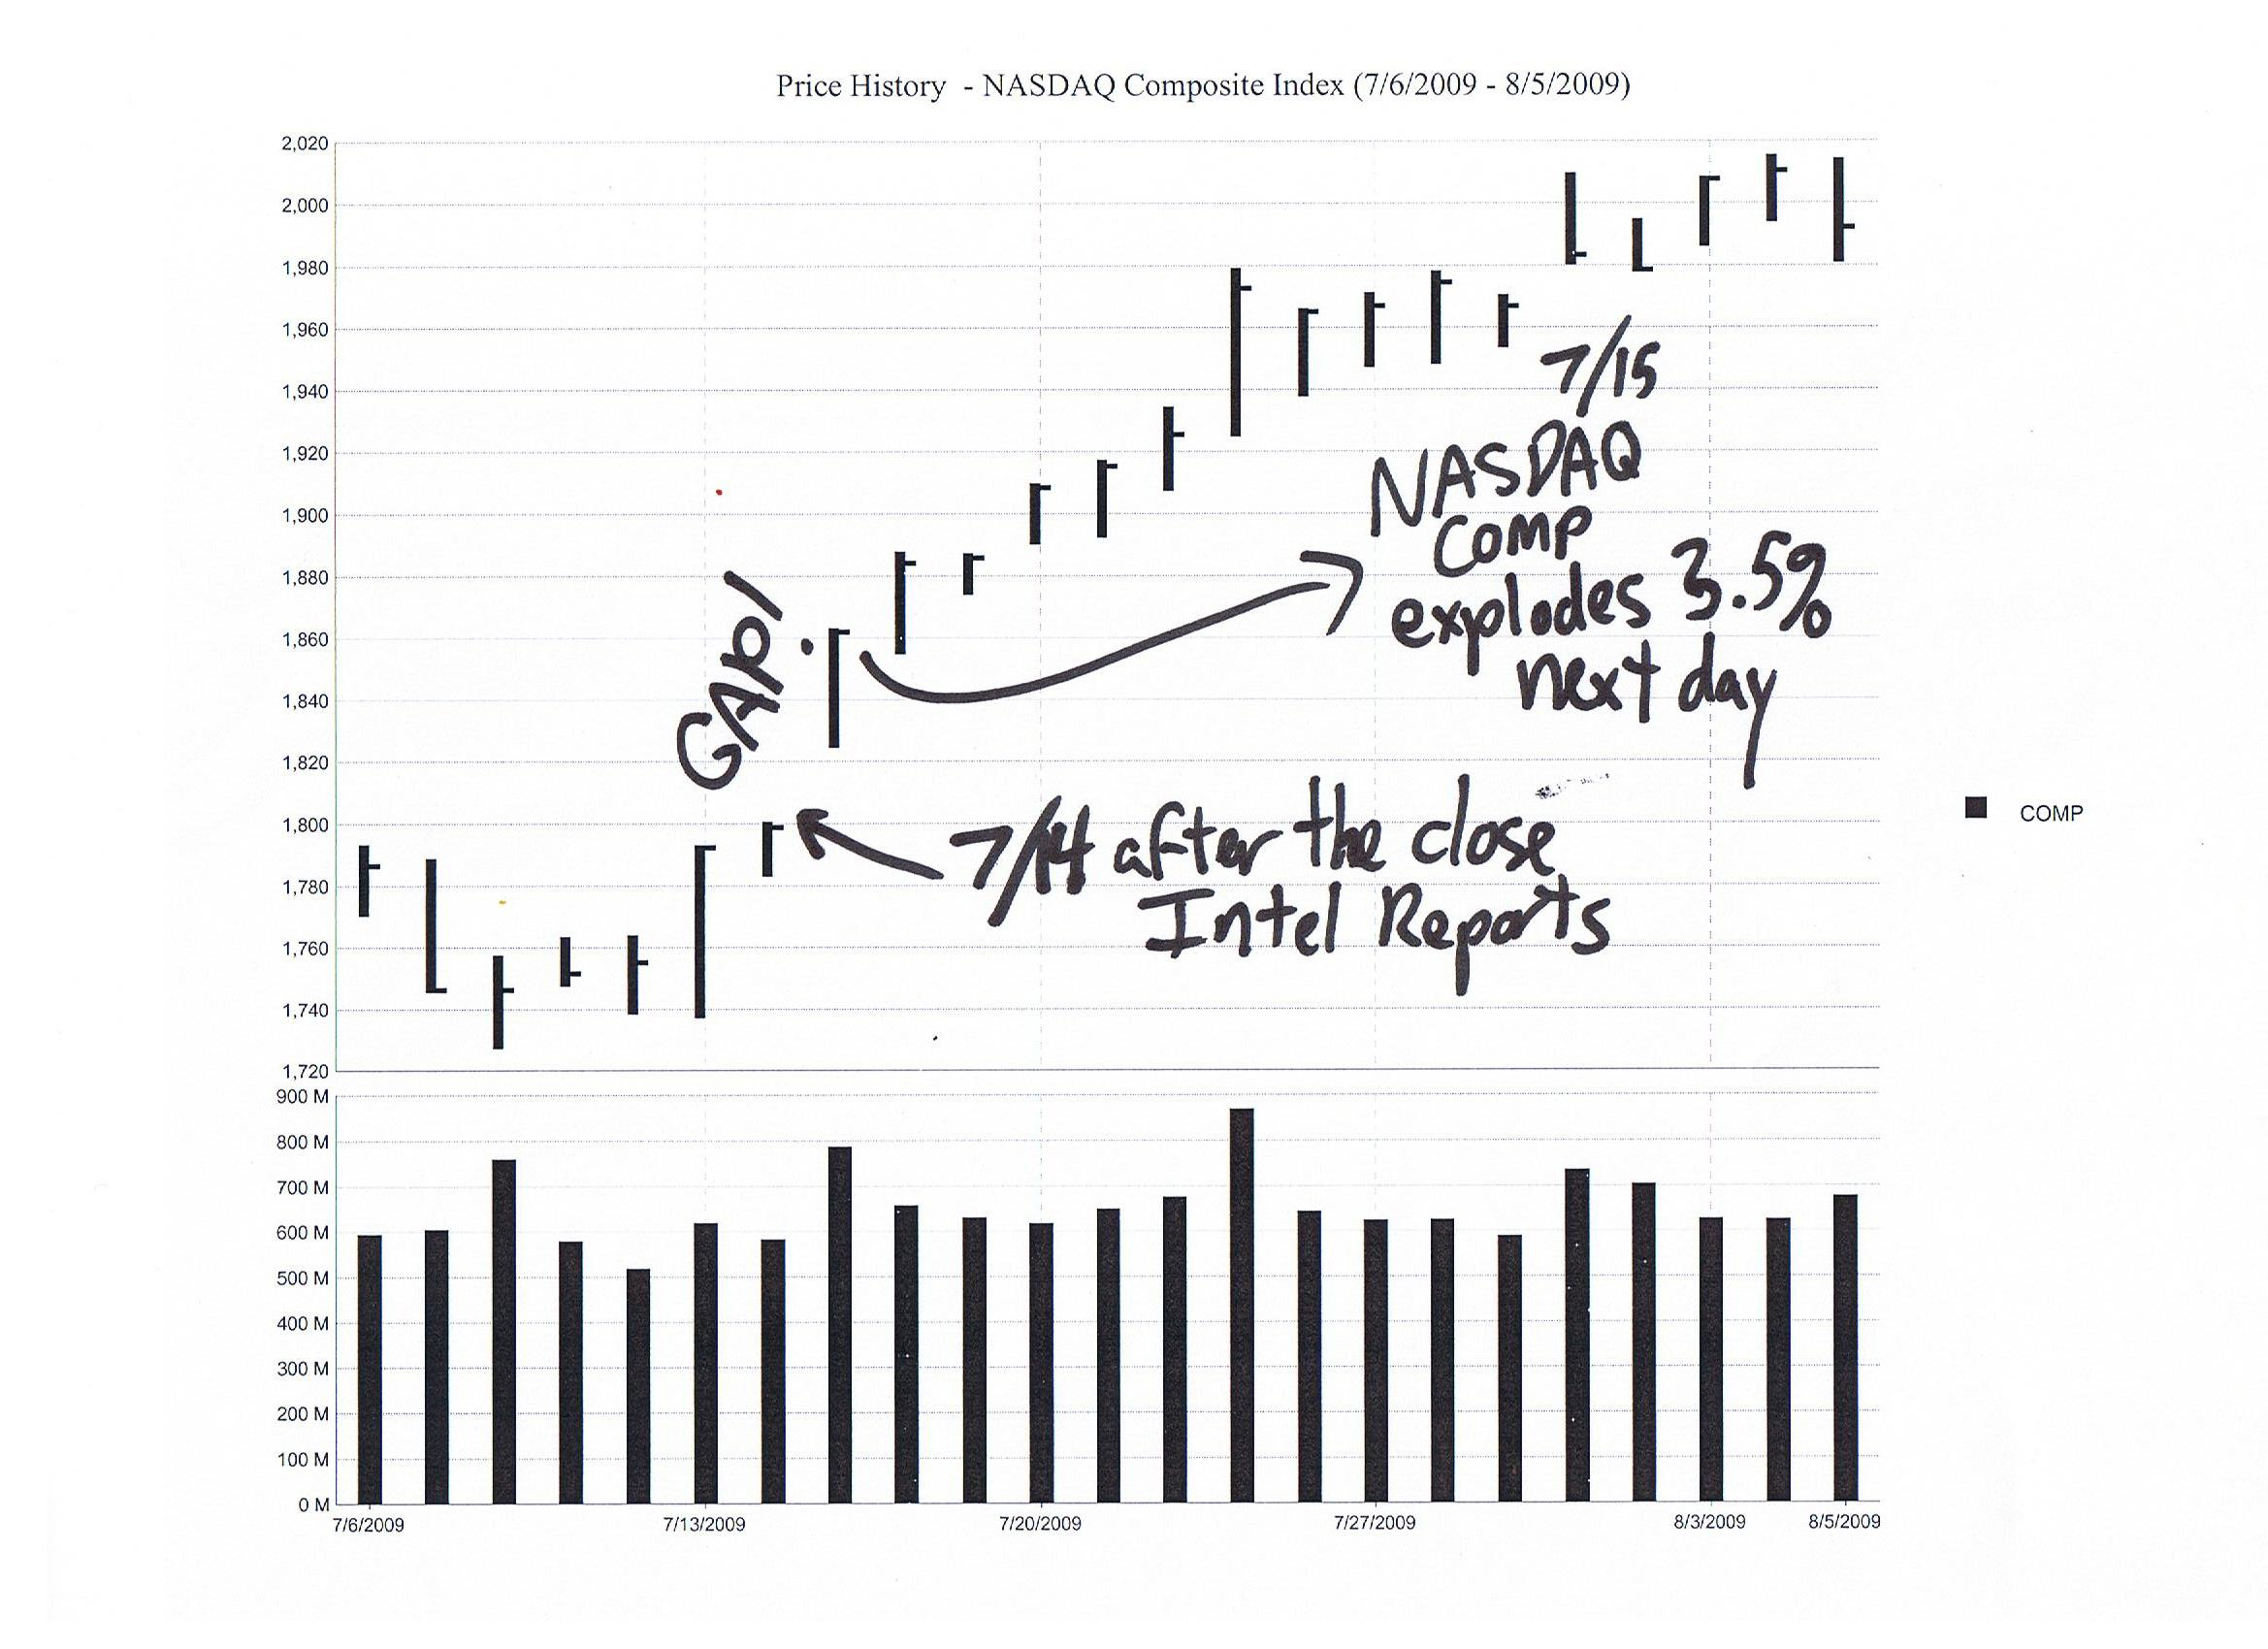 Nasdaq Composite before and after Intel's last earnings report (Q2 09)